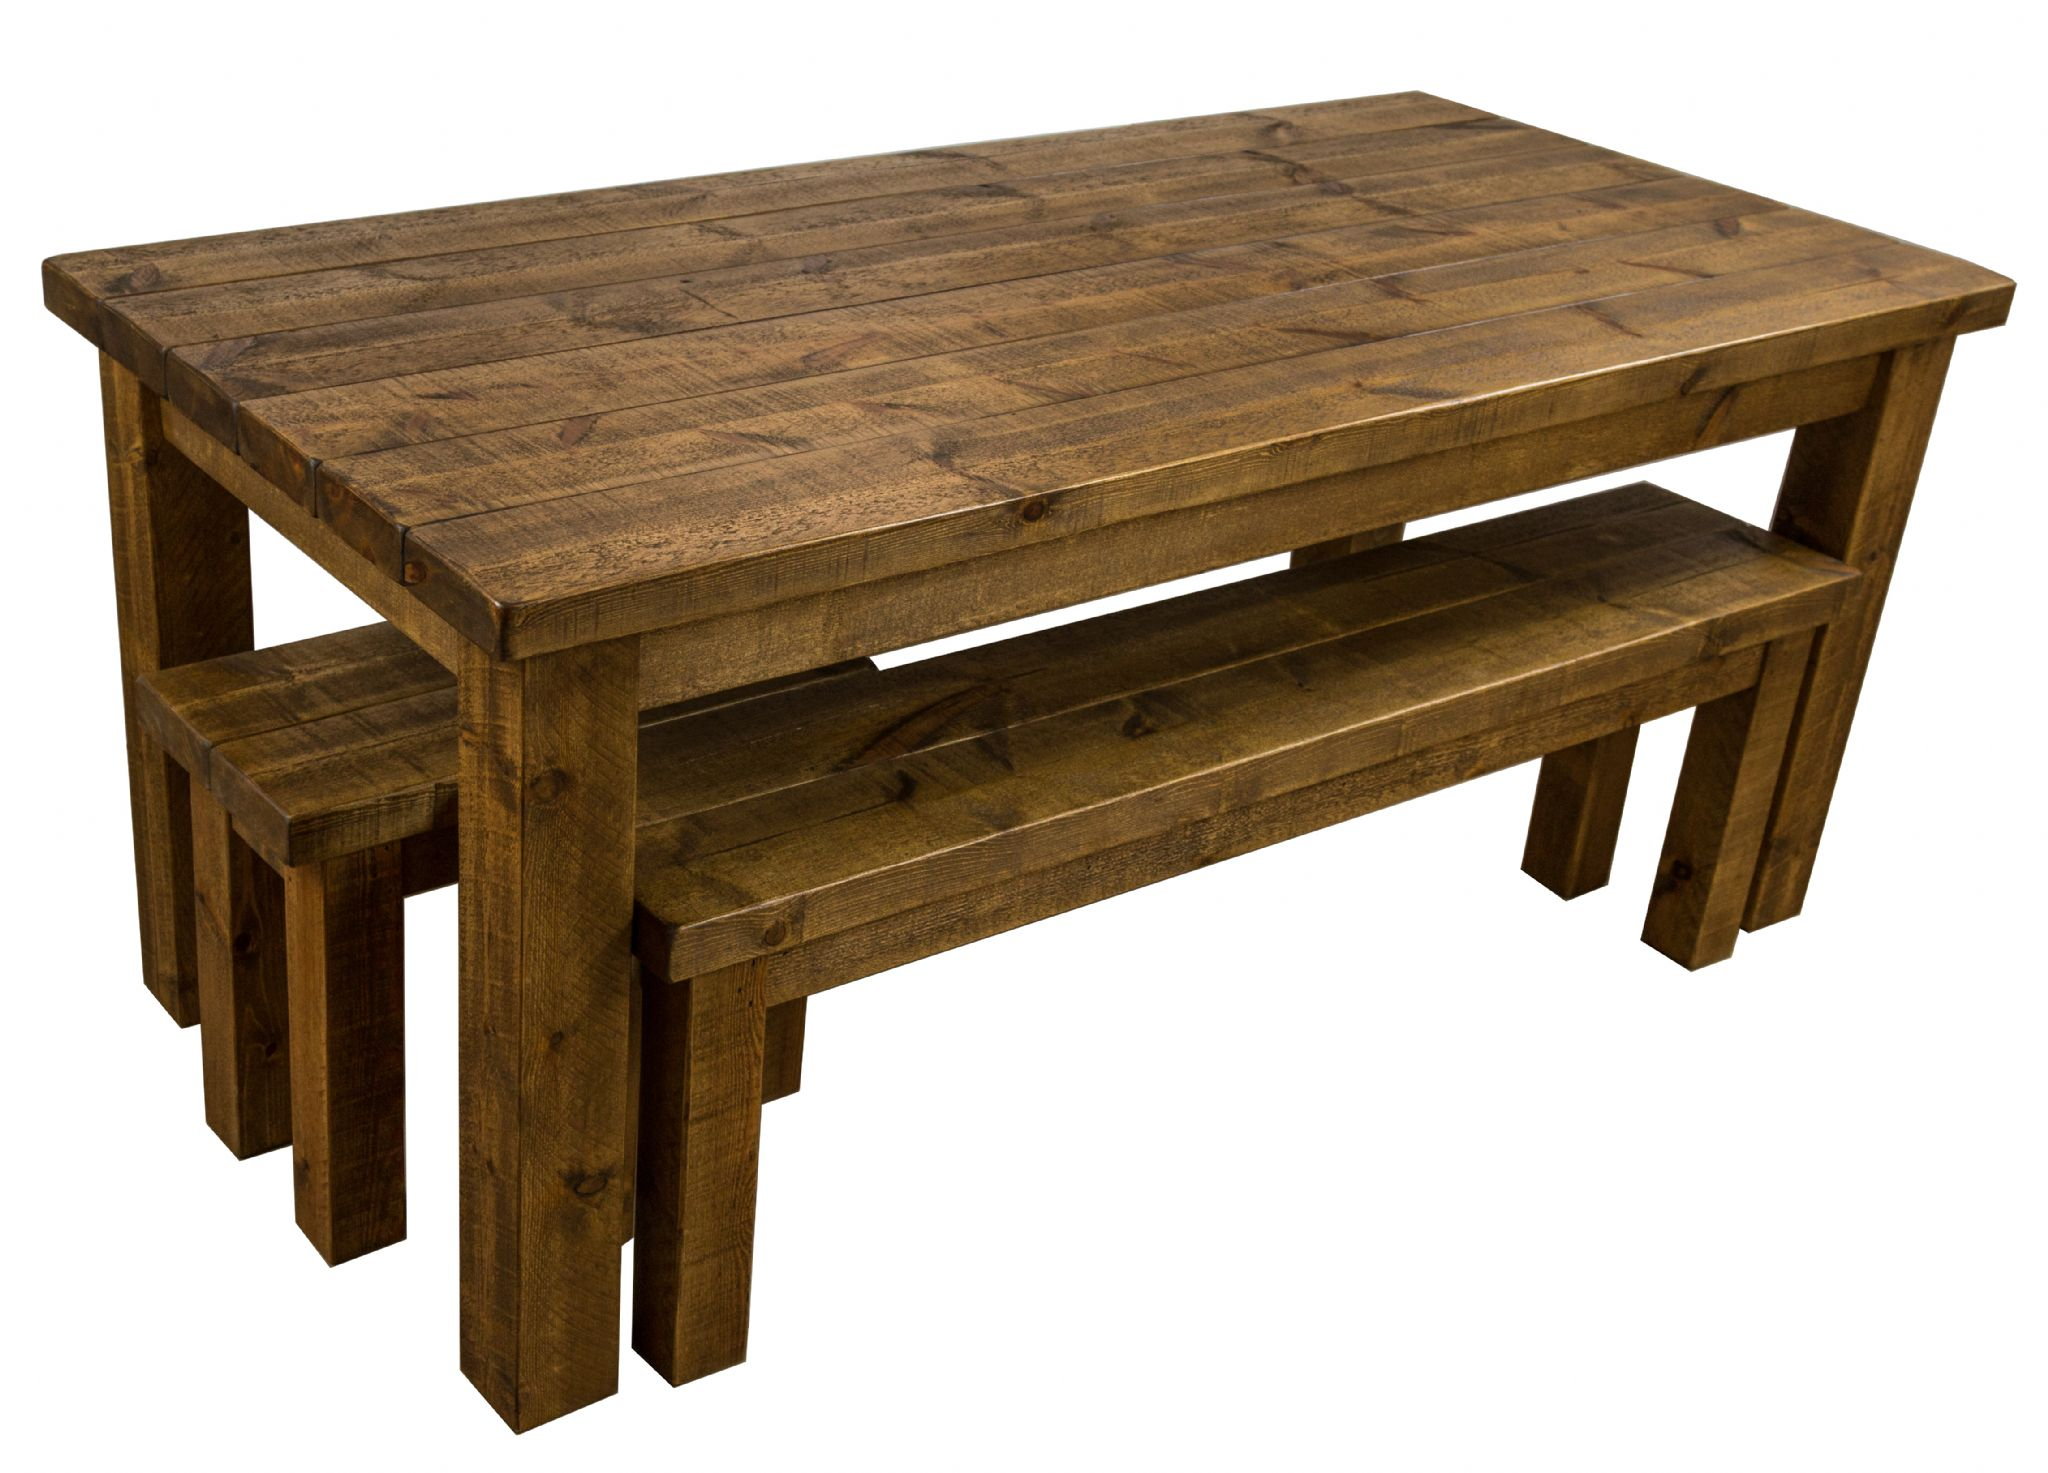 Tortuga Rustic 6x3 wooden farmhouse dining table with 2 benches